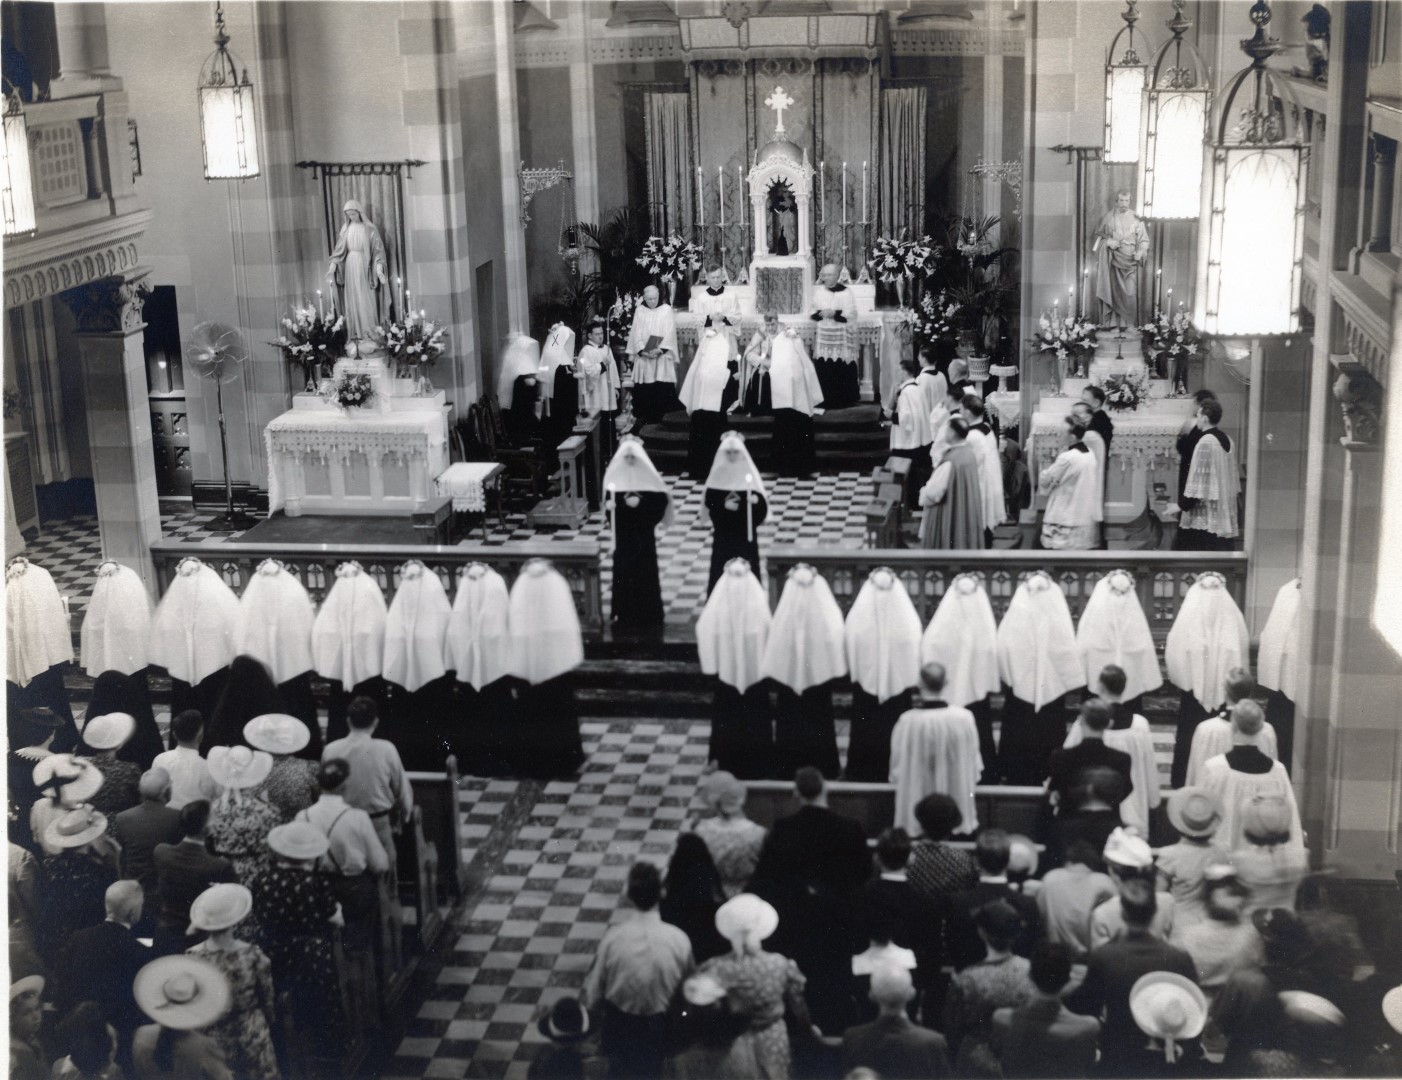 SSND reception ceremony, St. Louis 1941